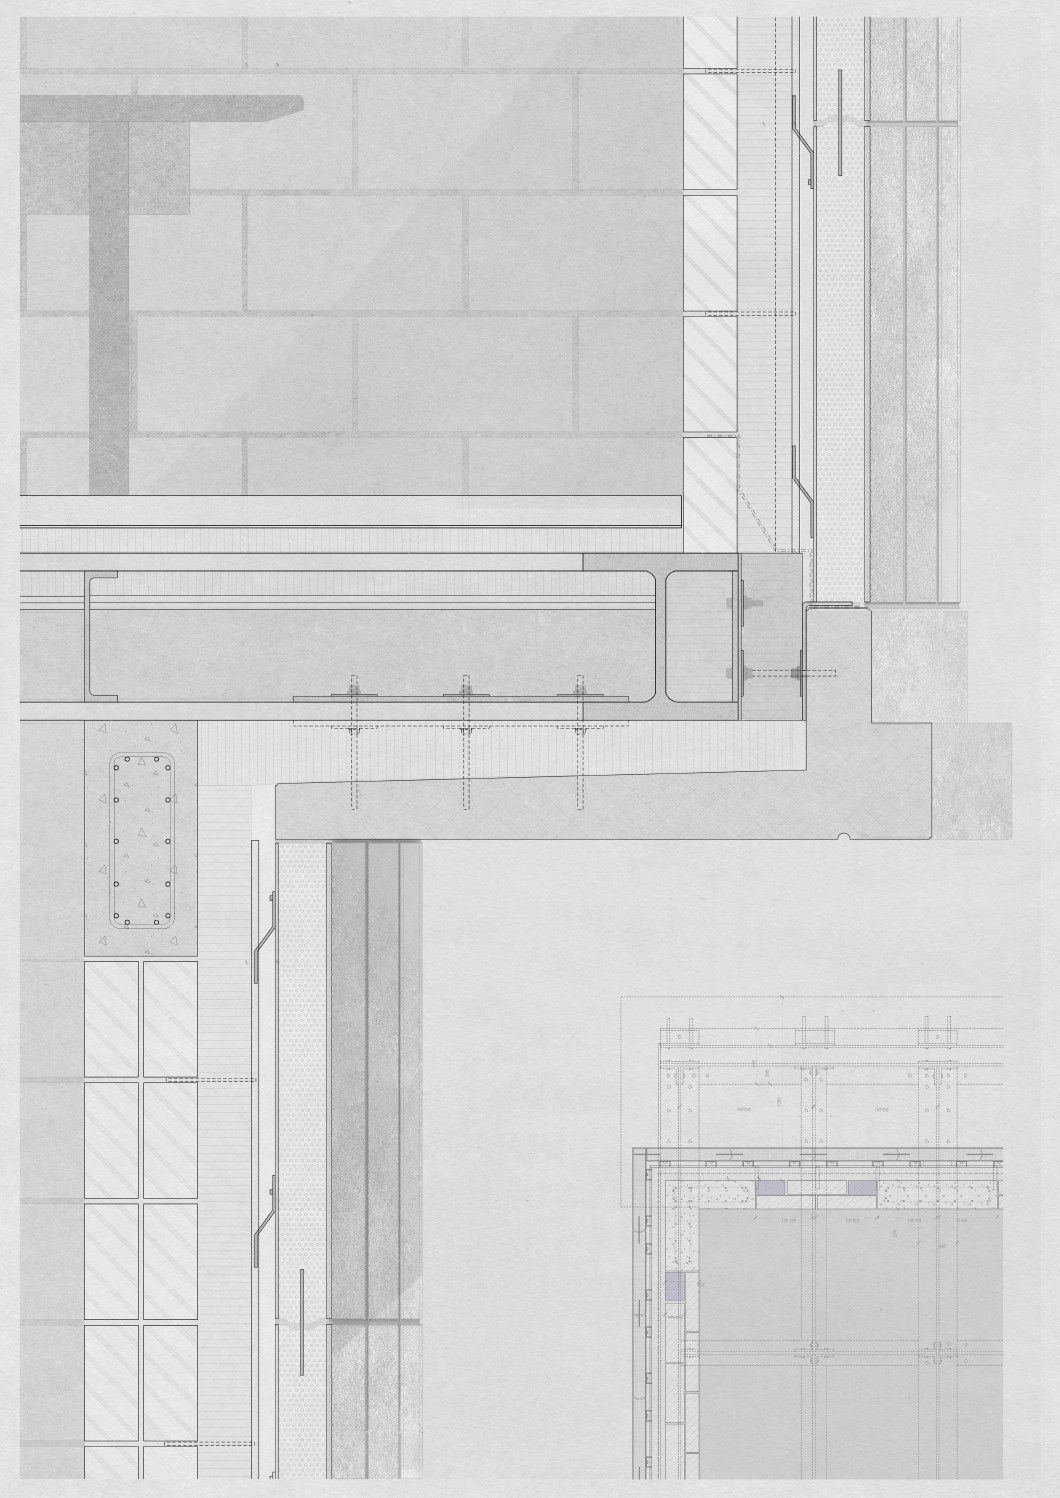 Construction Detail Section